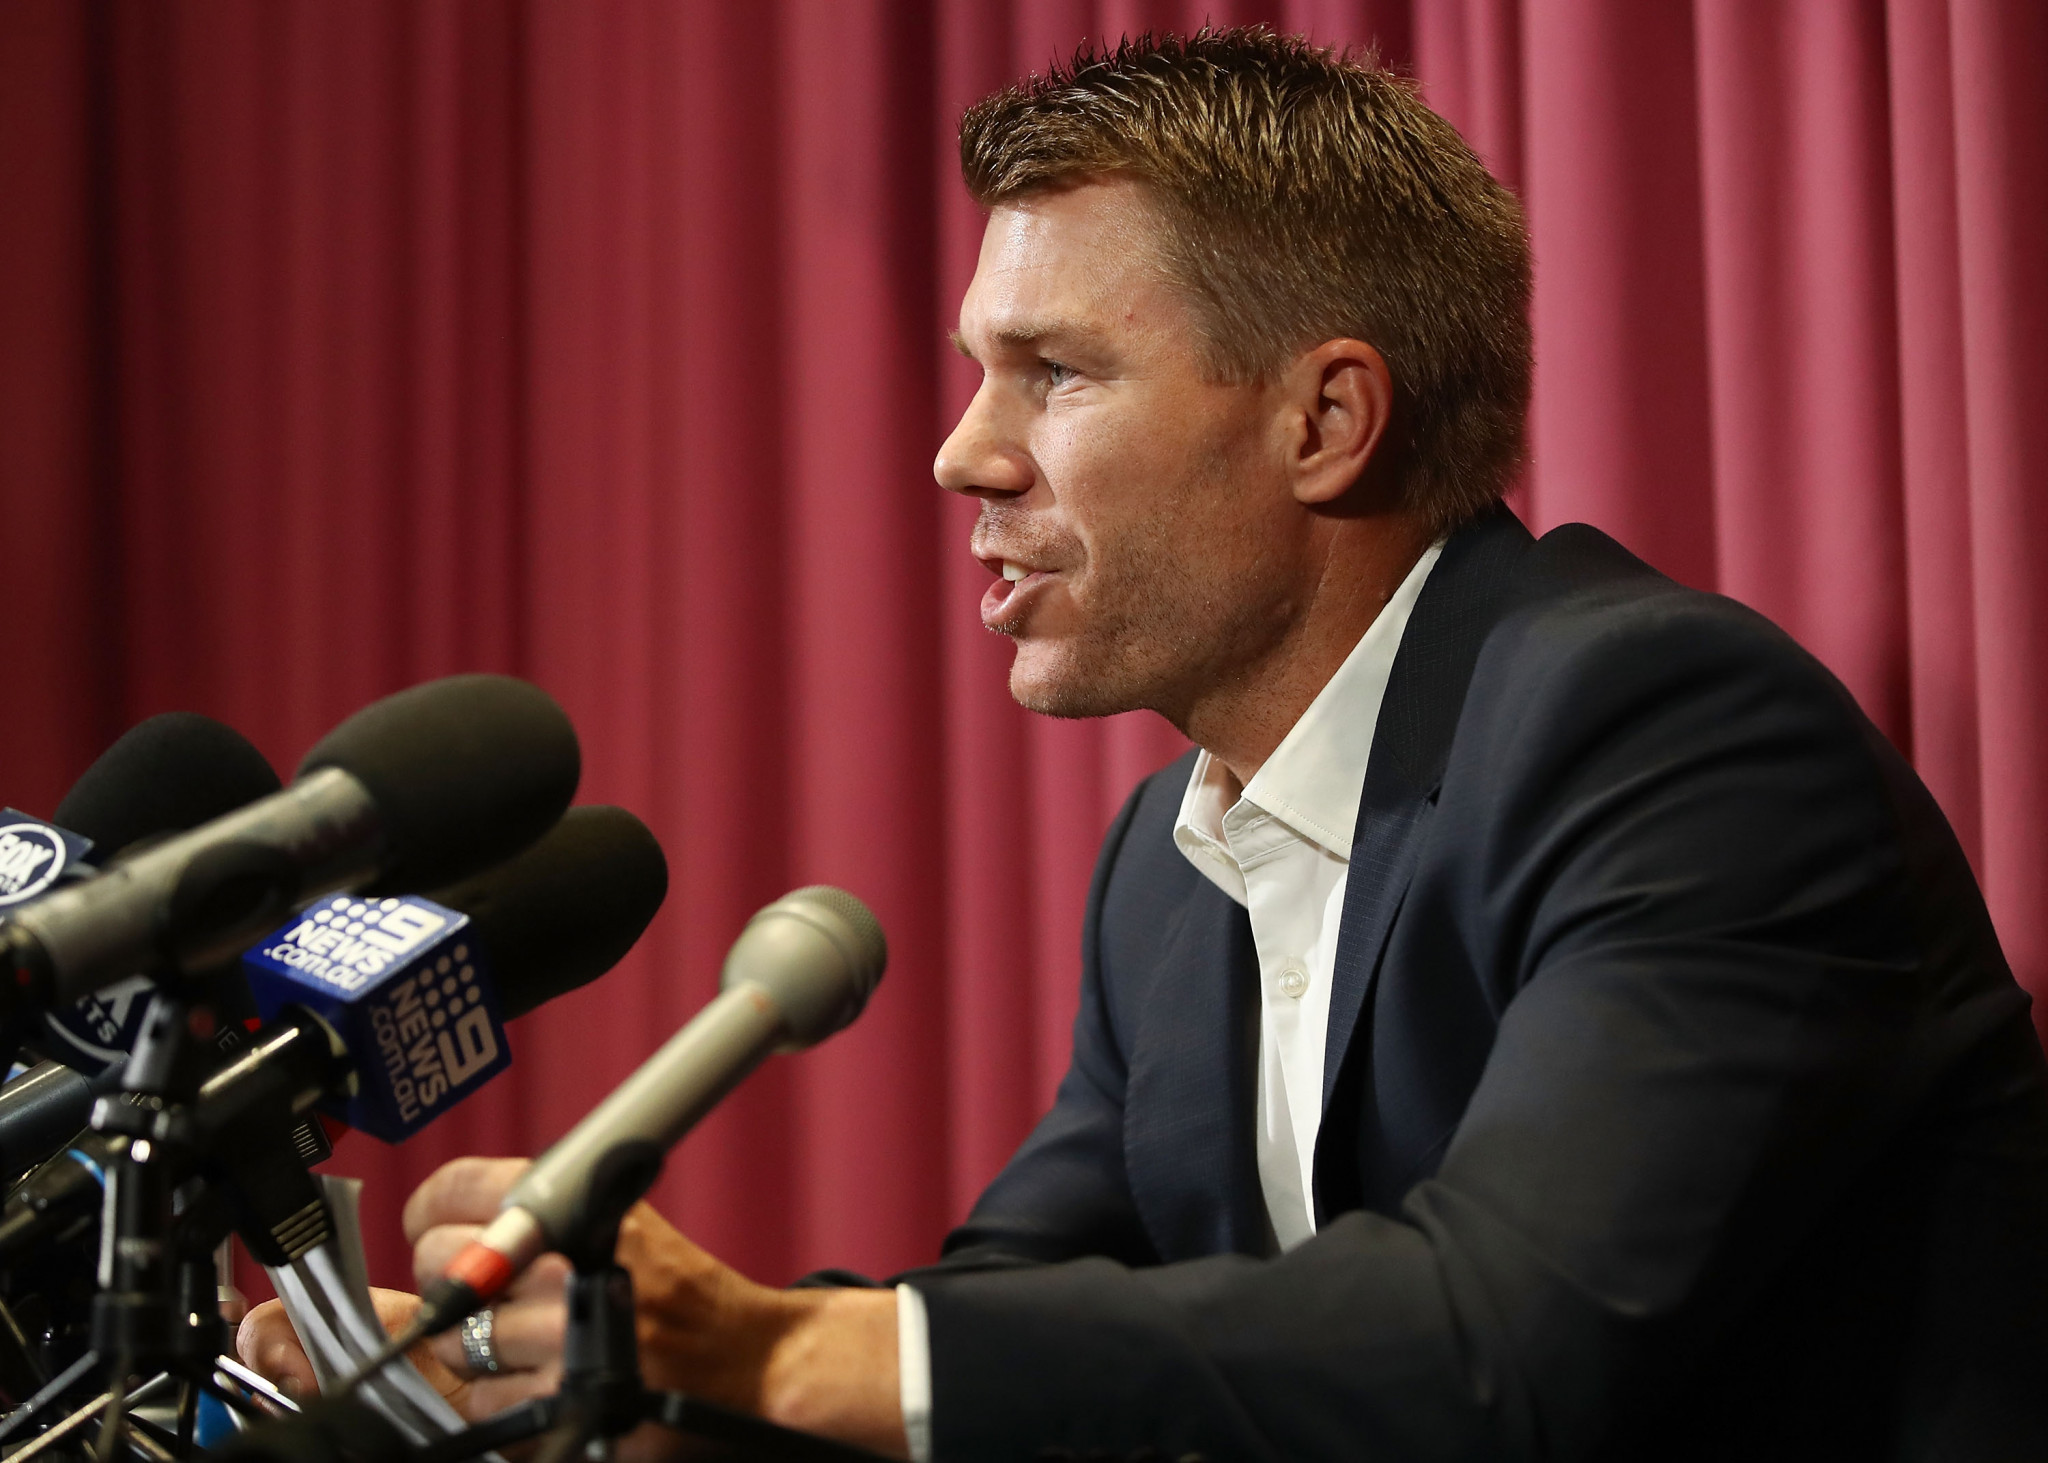 David Warner has accepted the sanction from Cricket Australia ©Getty Images